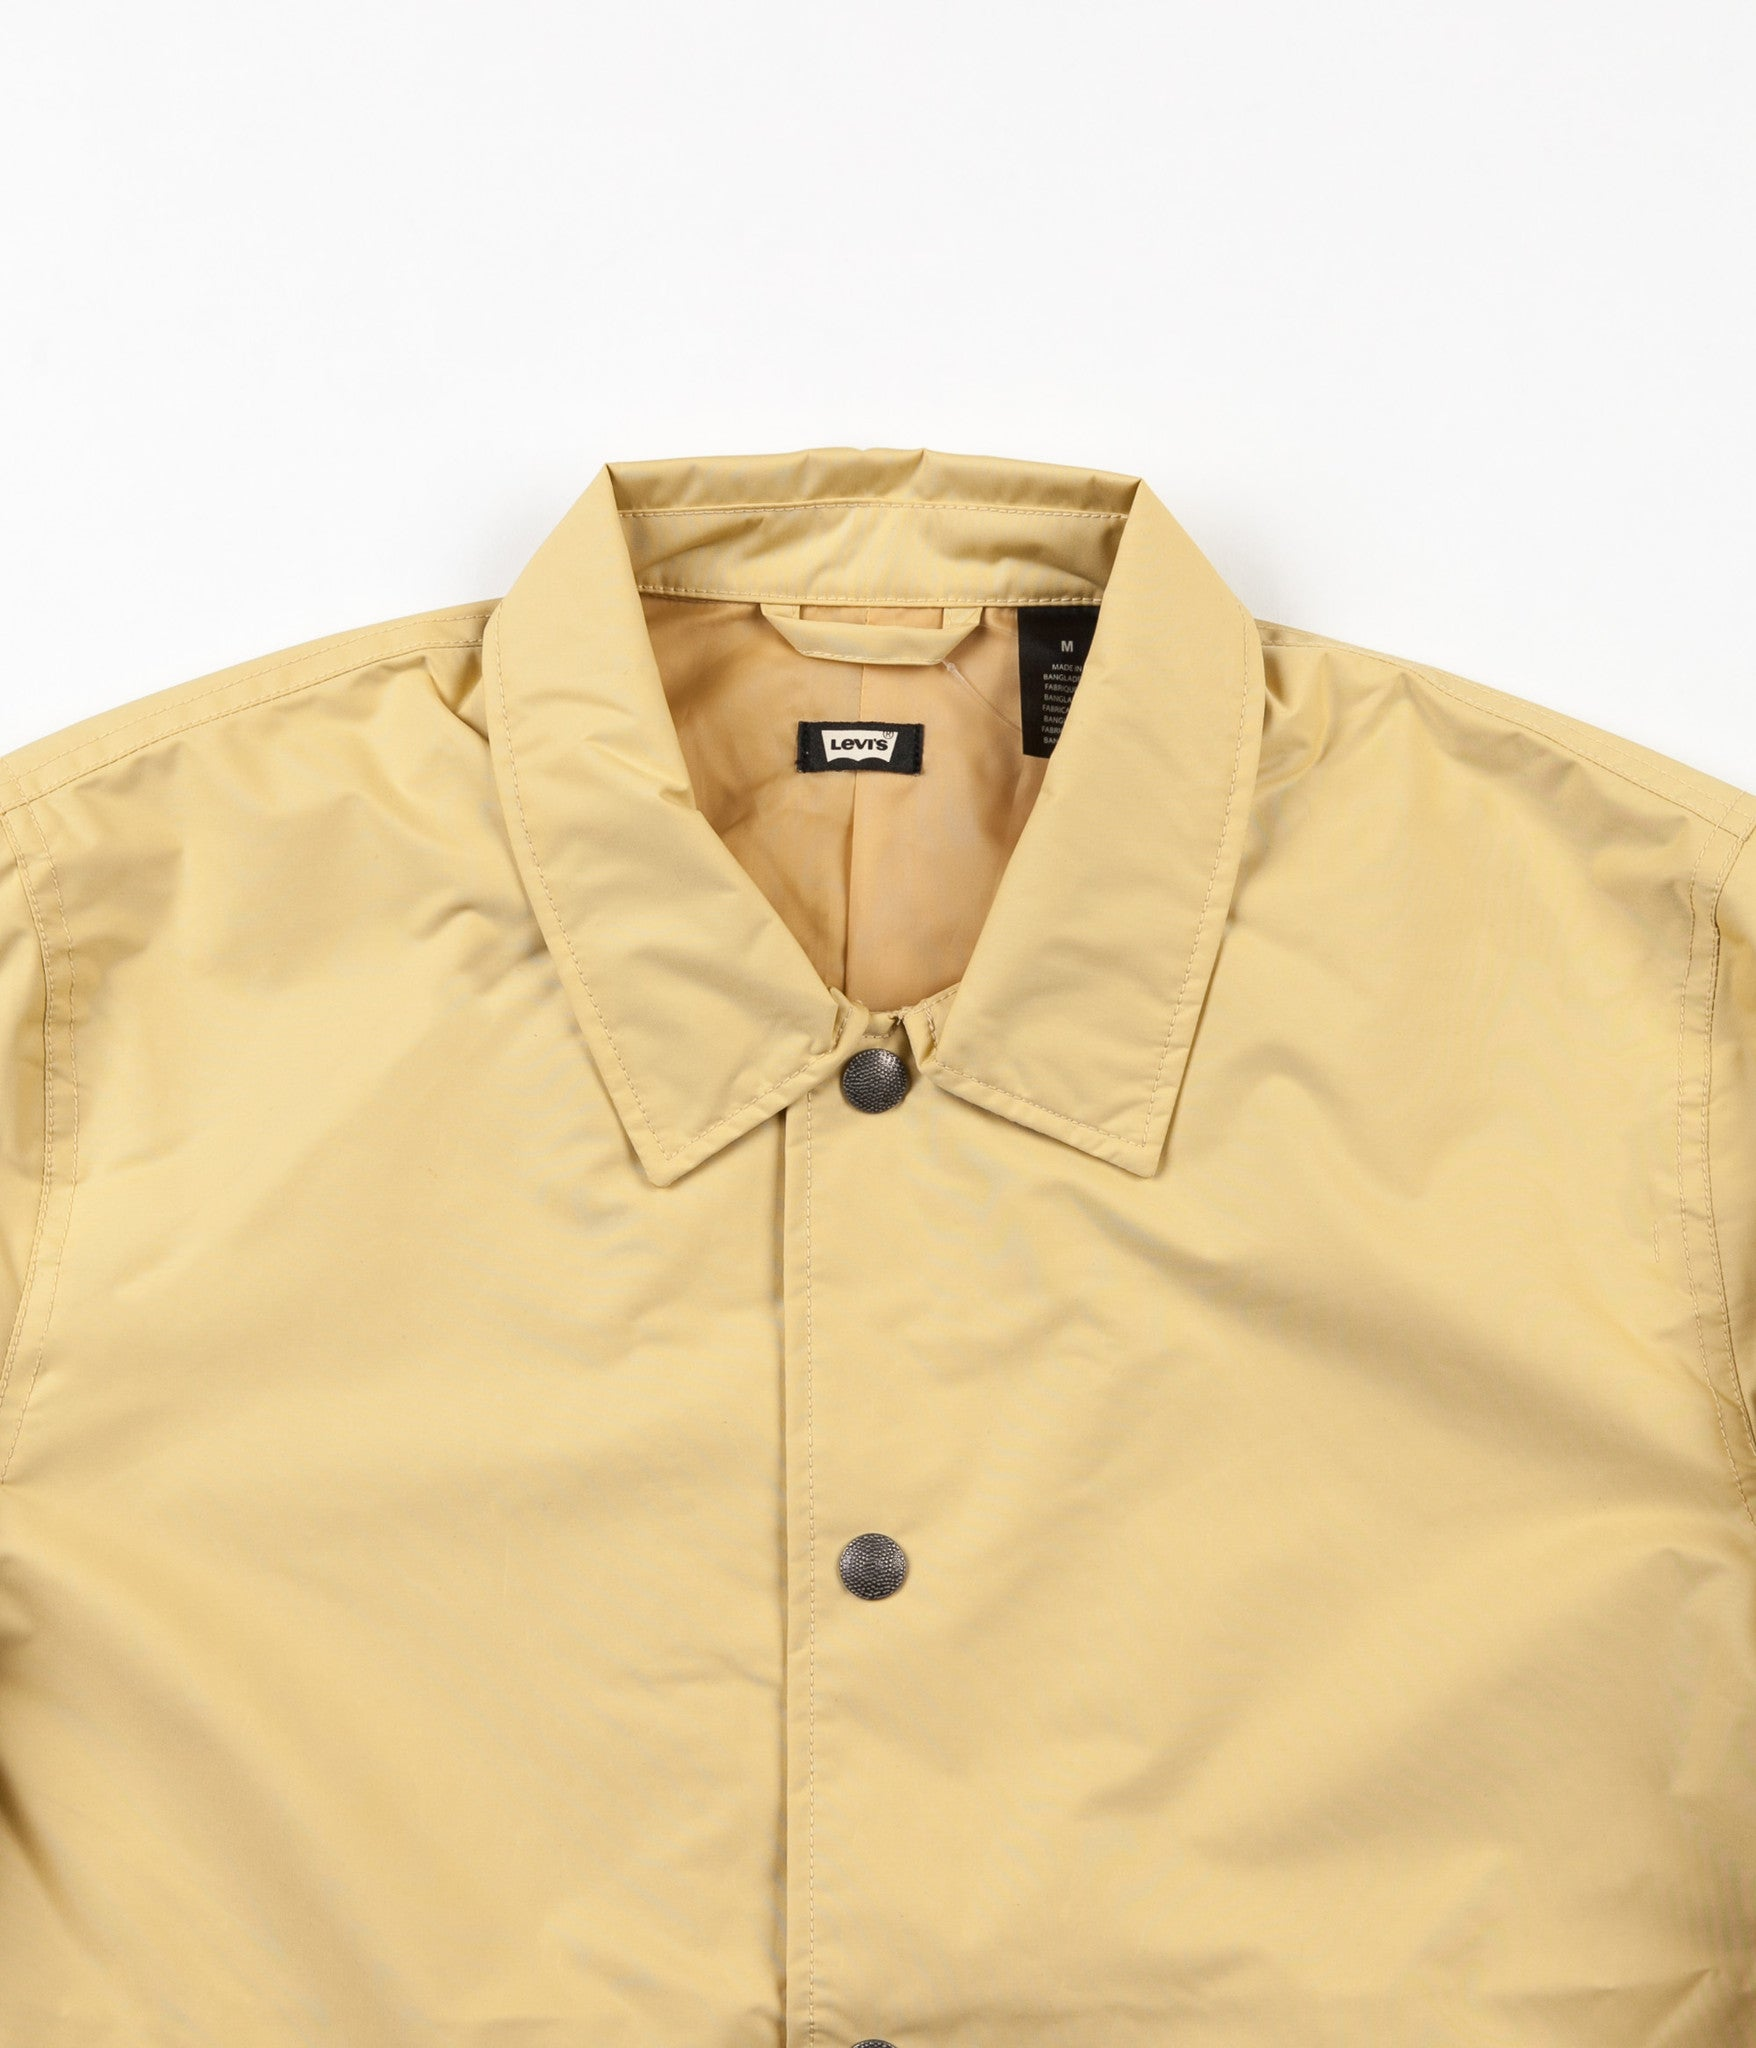 Levi's Skate Long Coaches Jacket - Jojoba